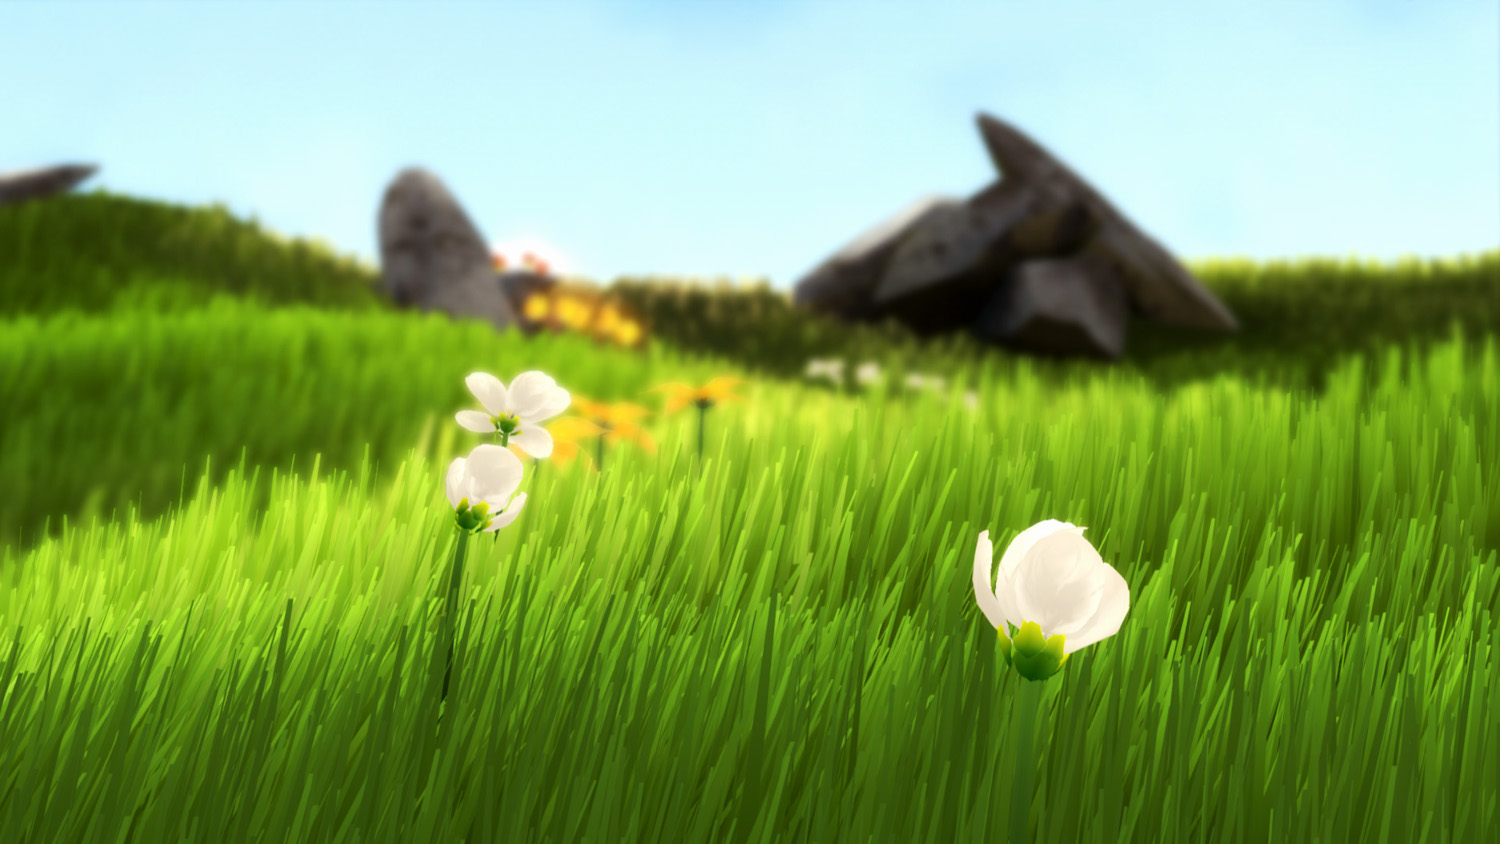 2012_Flower_A4345_thatgamecompany_Still_003_ltr